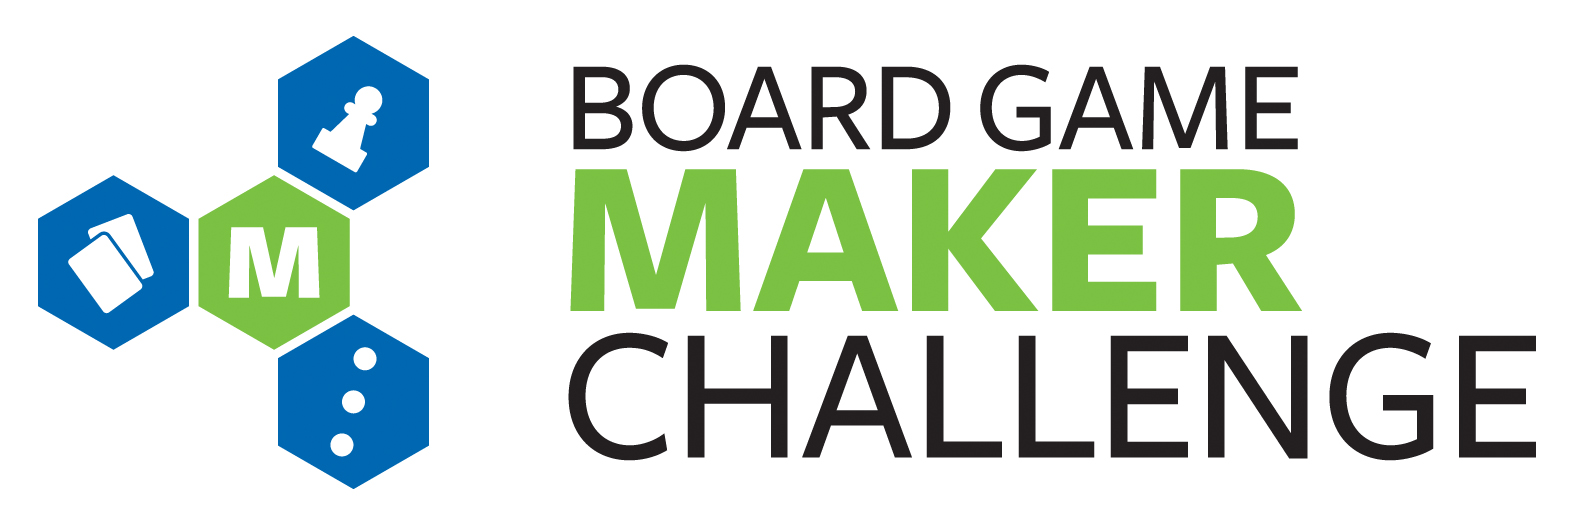 Board Game Maker Challenge! – Carroll Technology Council